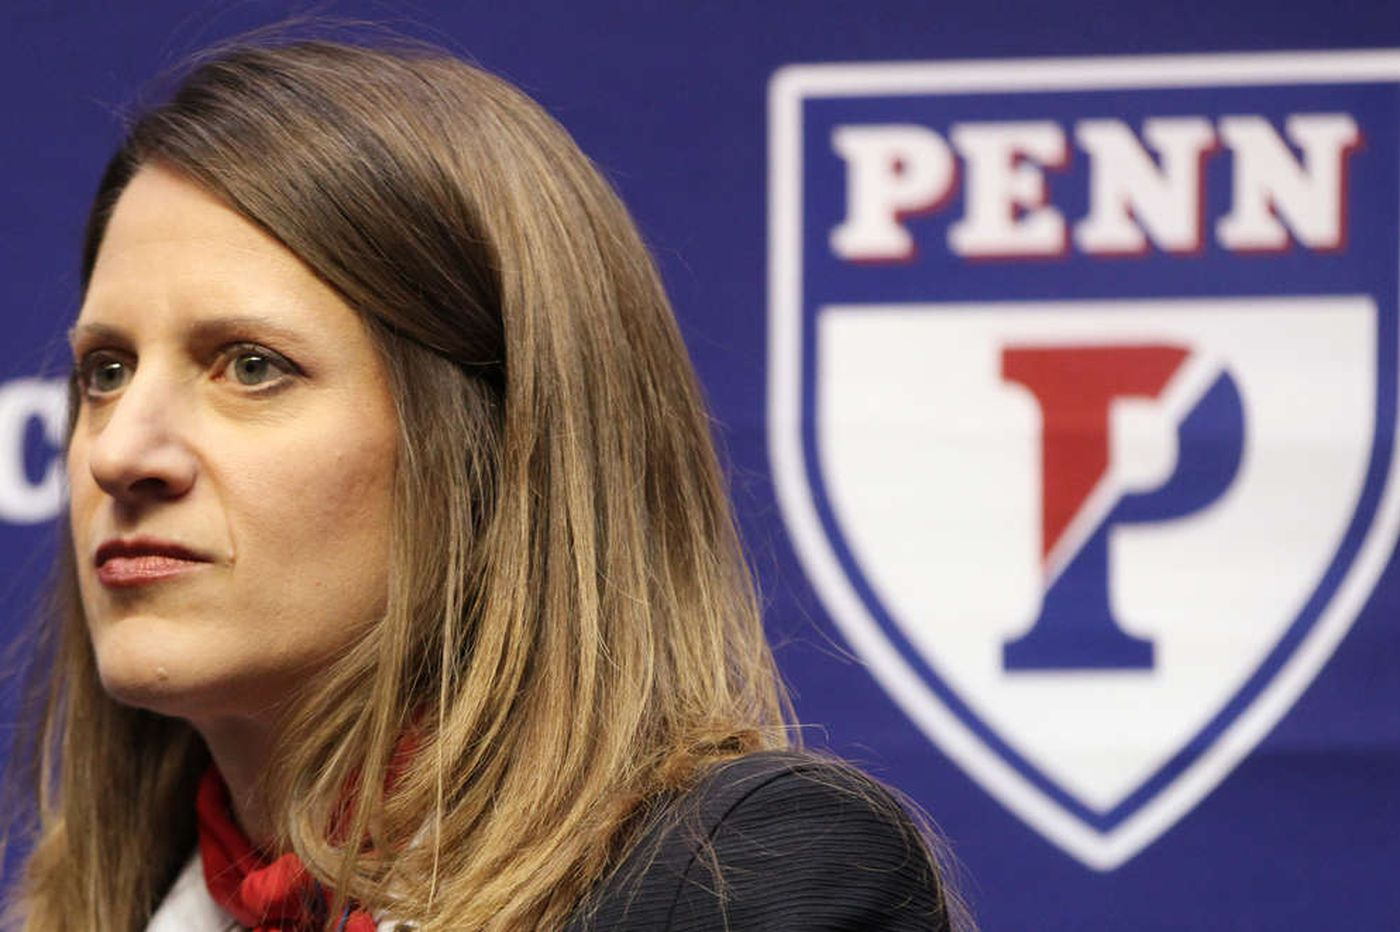 Penn athletic director Grace Calhoun is busier than ever, as chair of NCAA Division I council | Mike Jensen